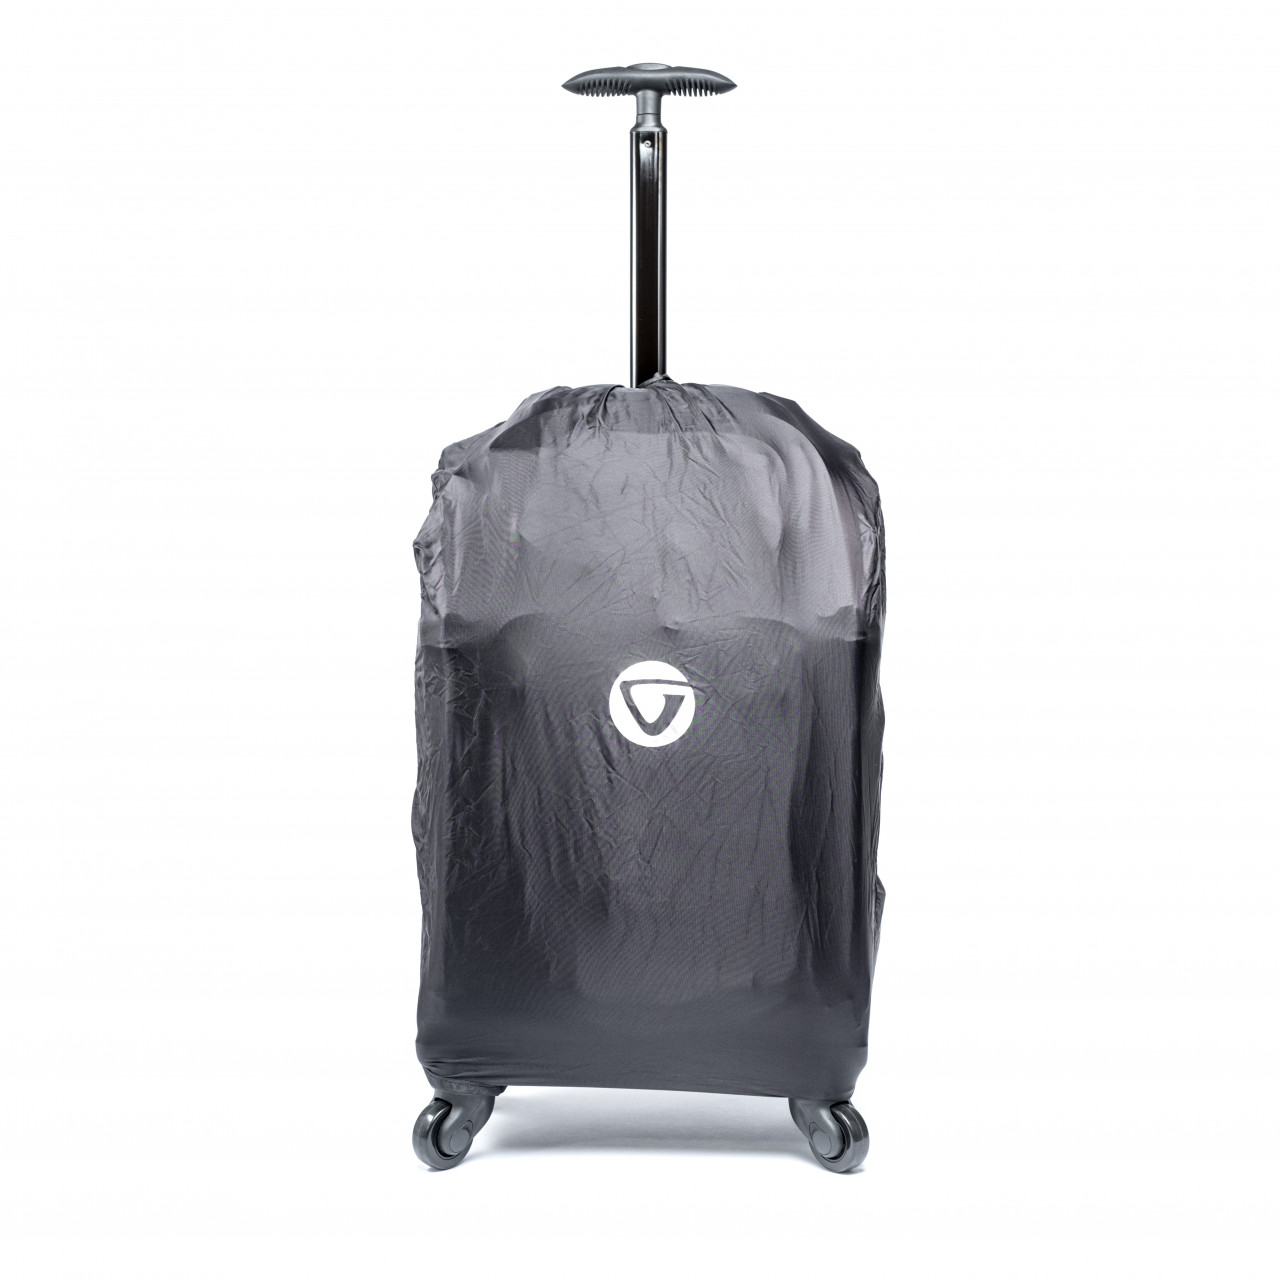 Vanguard Alta Fly 55T Trolley 4 Wheels